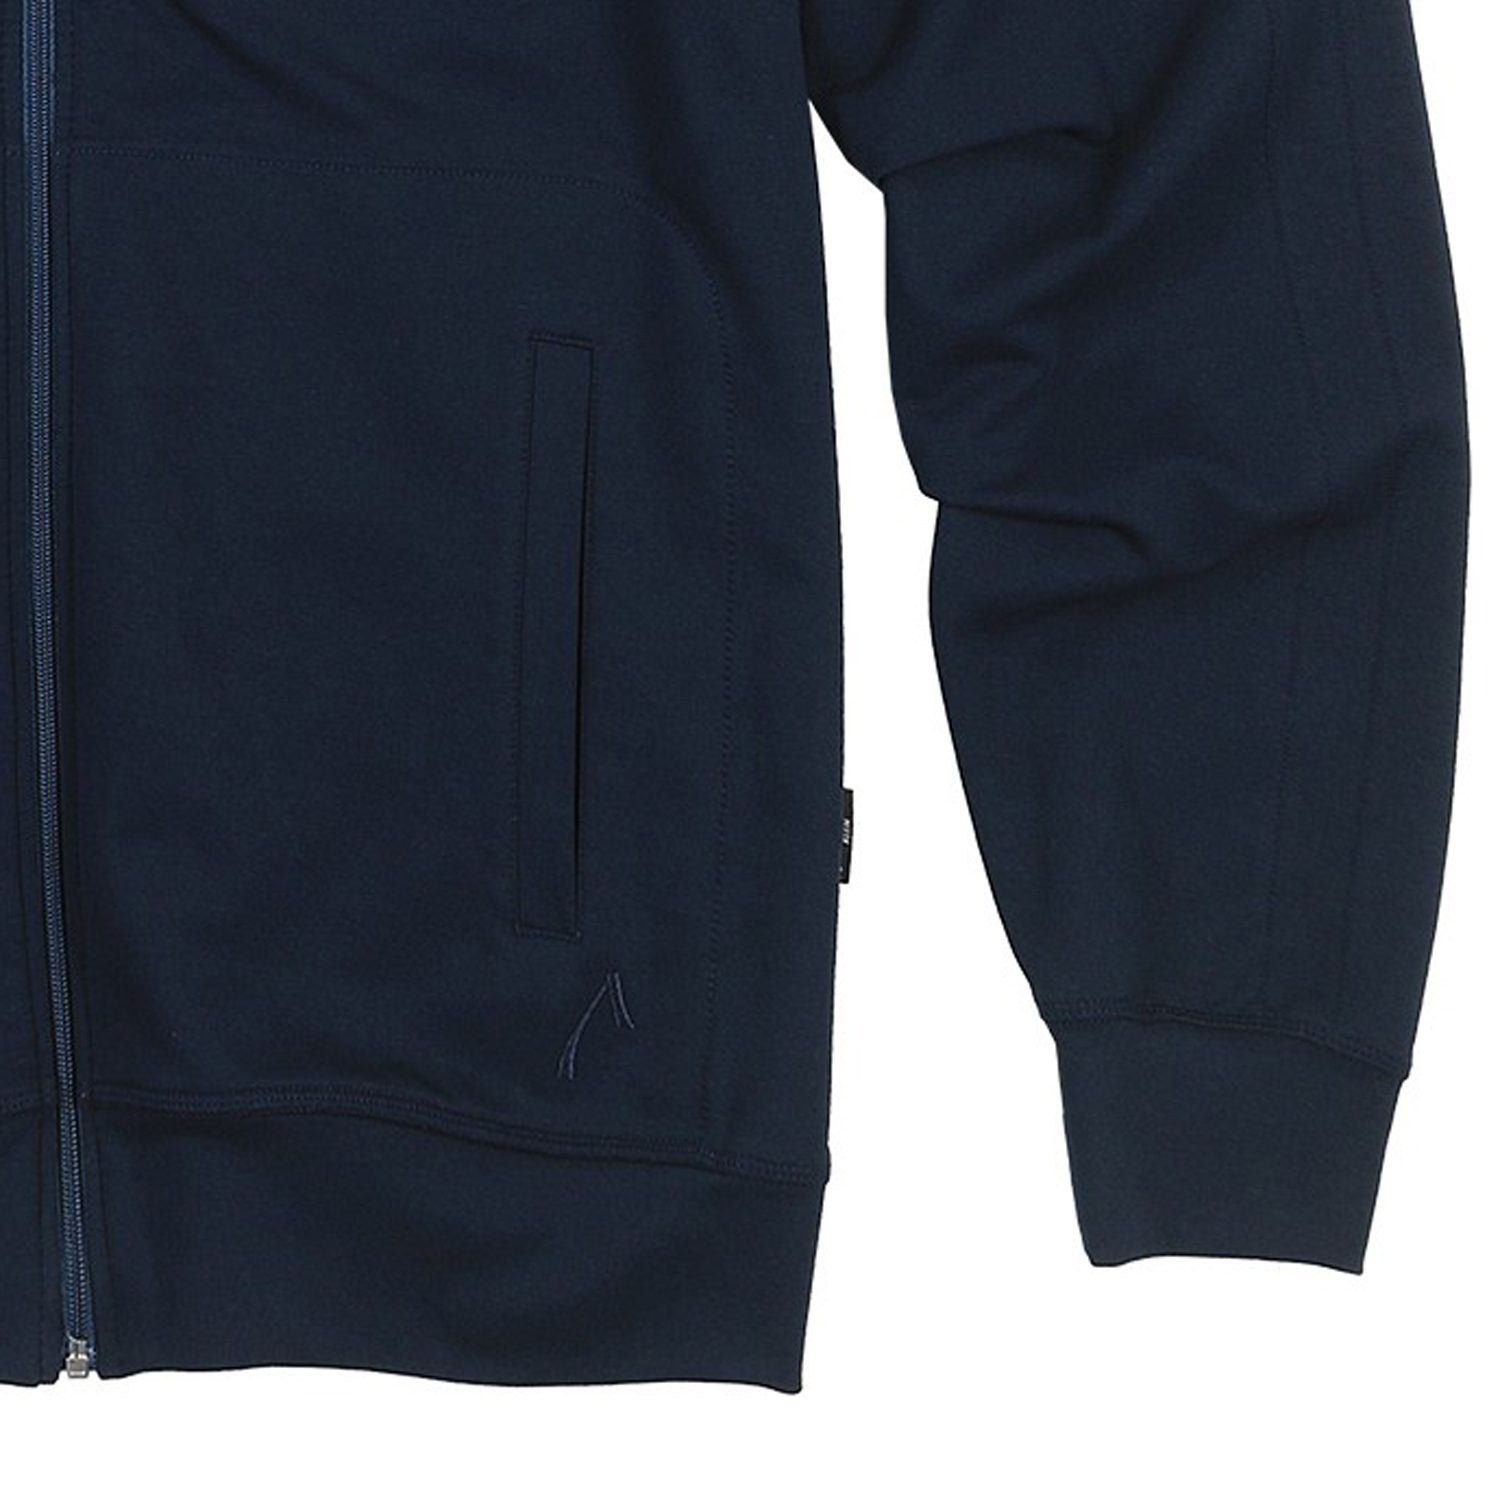 Detail Image to long size sports and leisure jacket in blue, plus sizes by AUTHENTIC KLEIN